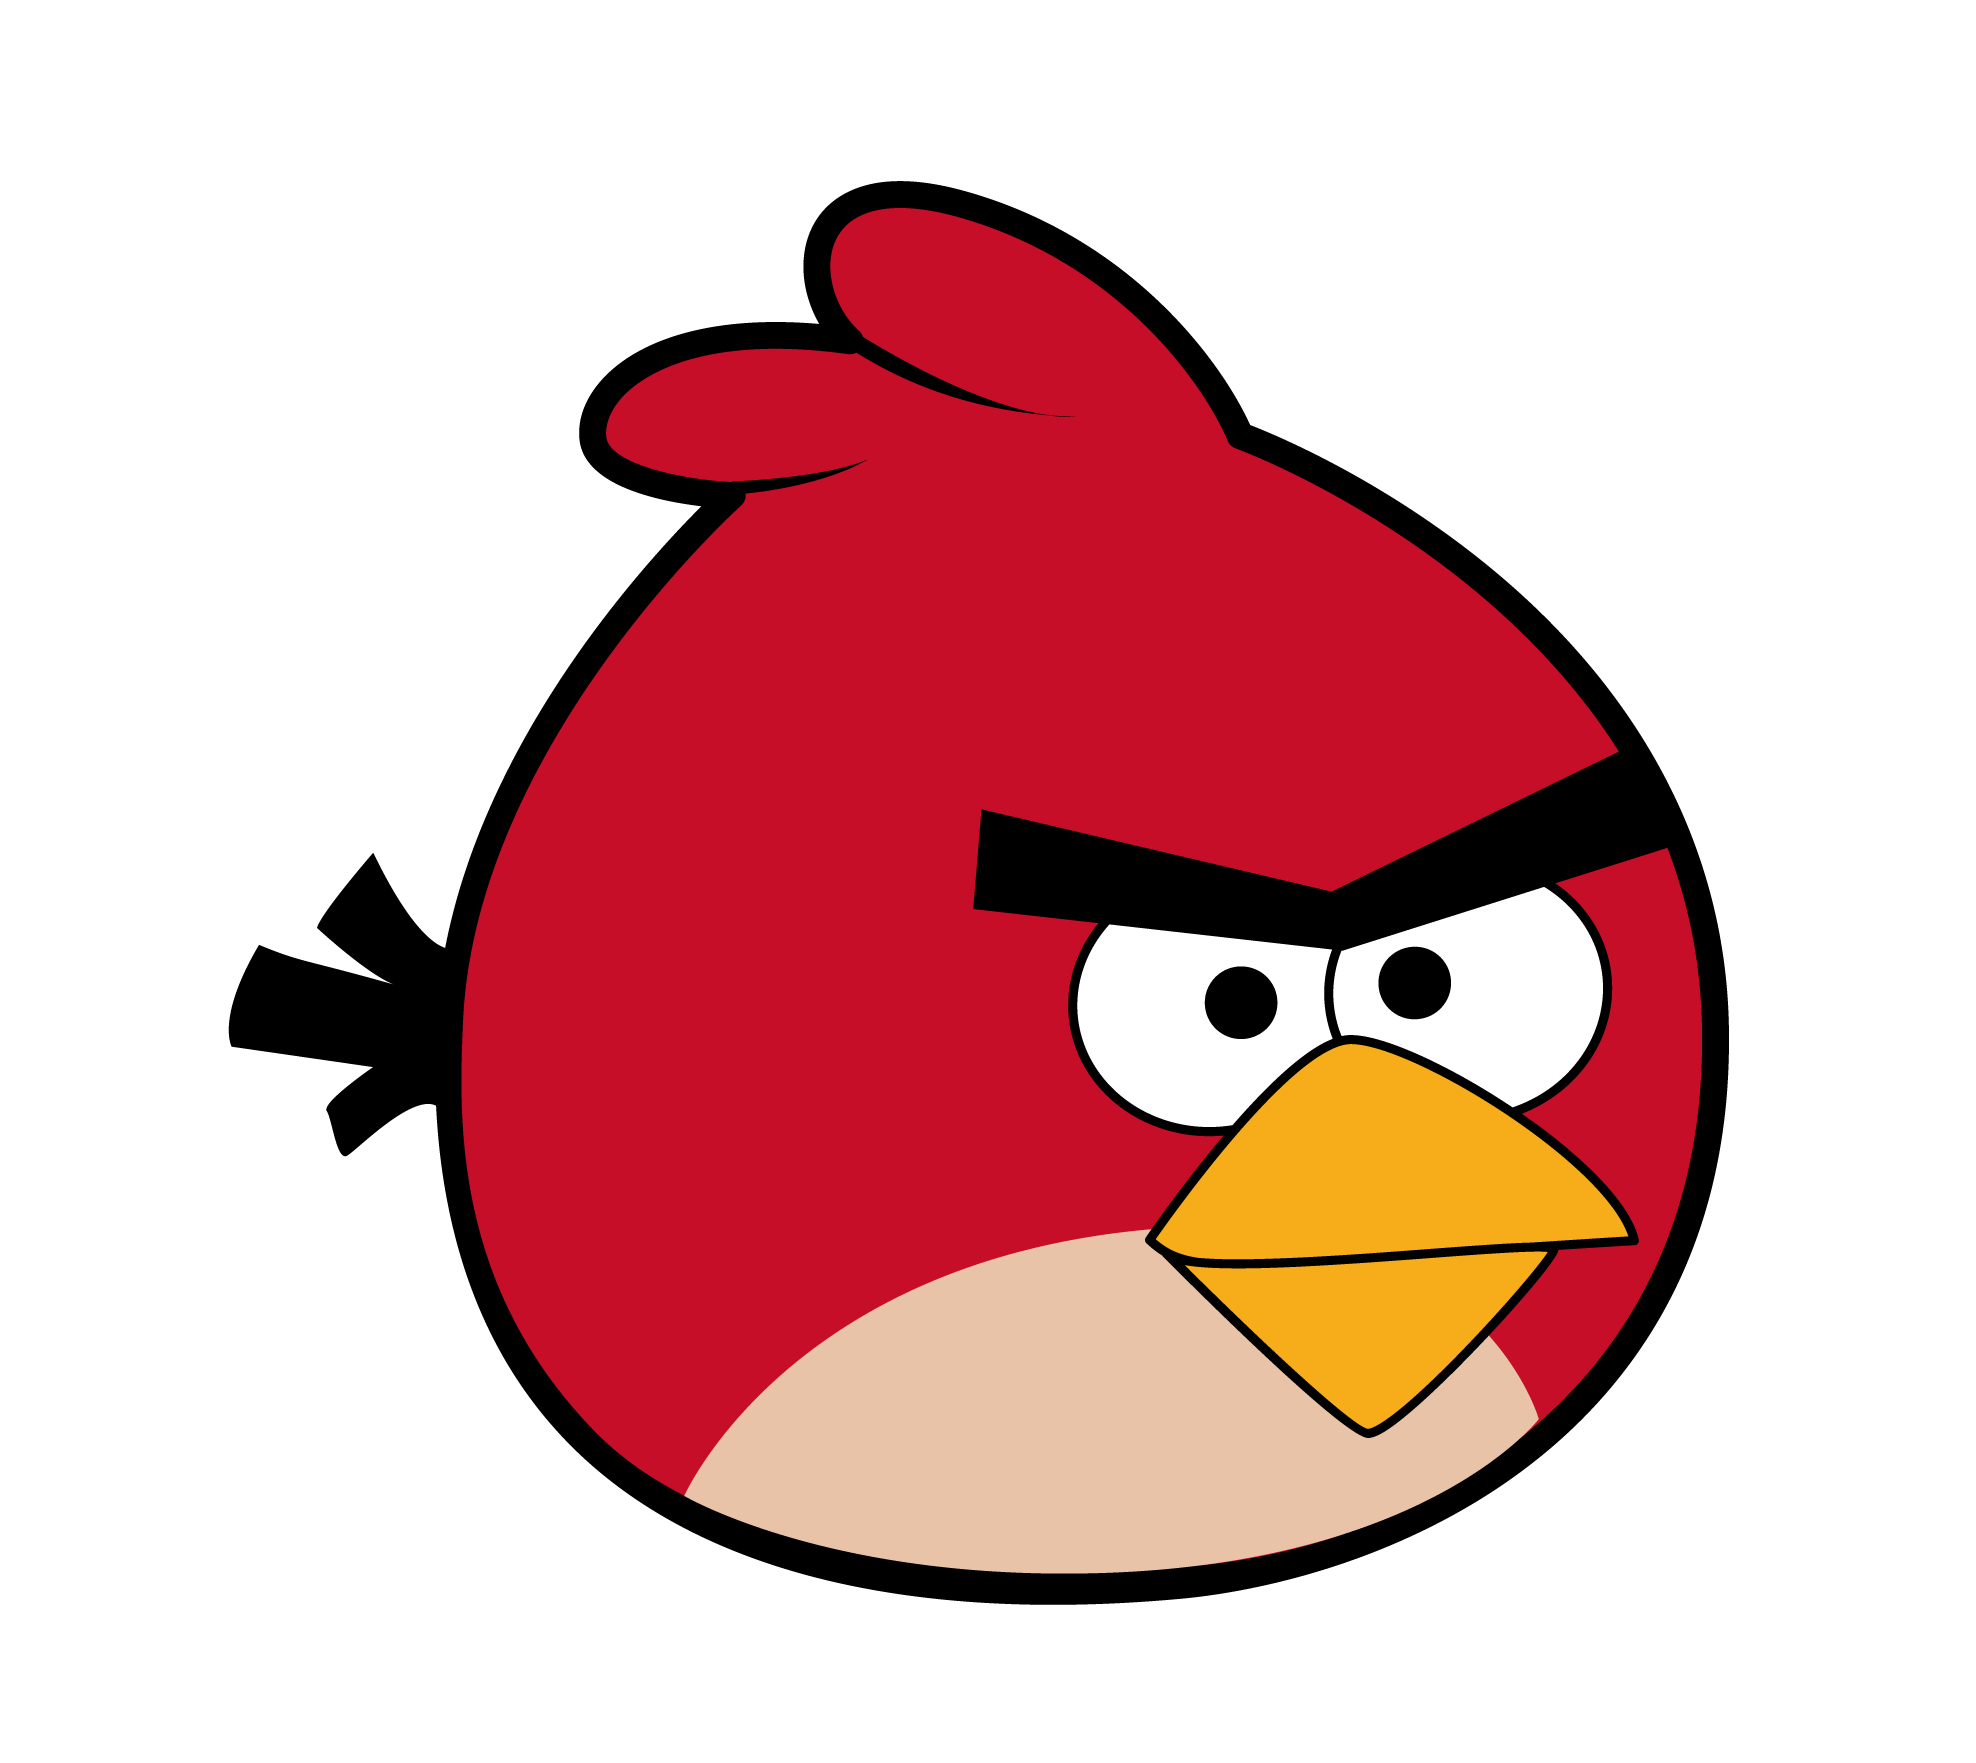 Parrot clipart angry Headed Download Finch Red clipart